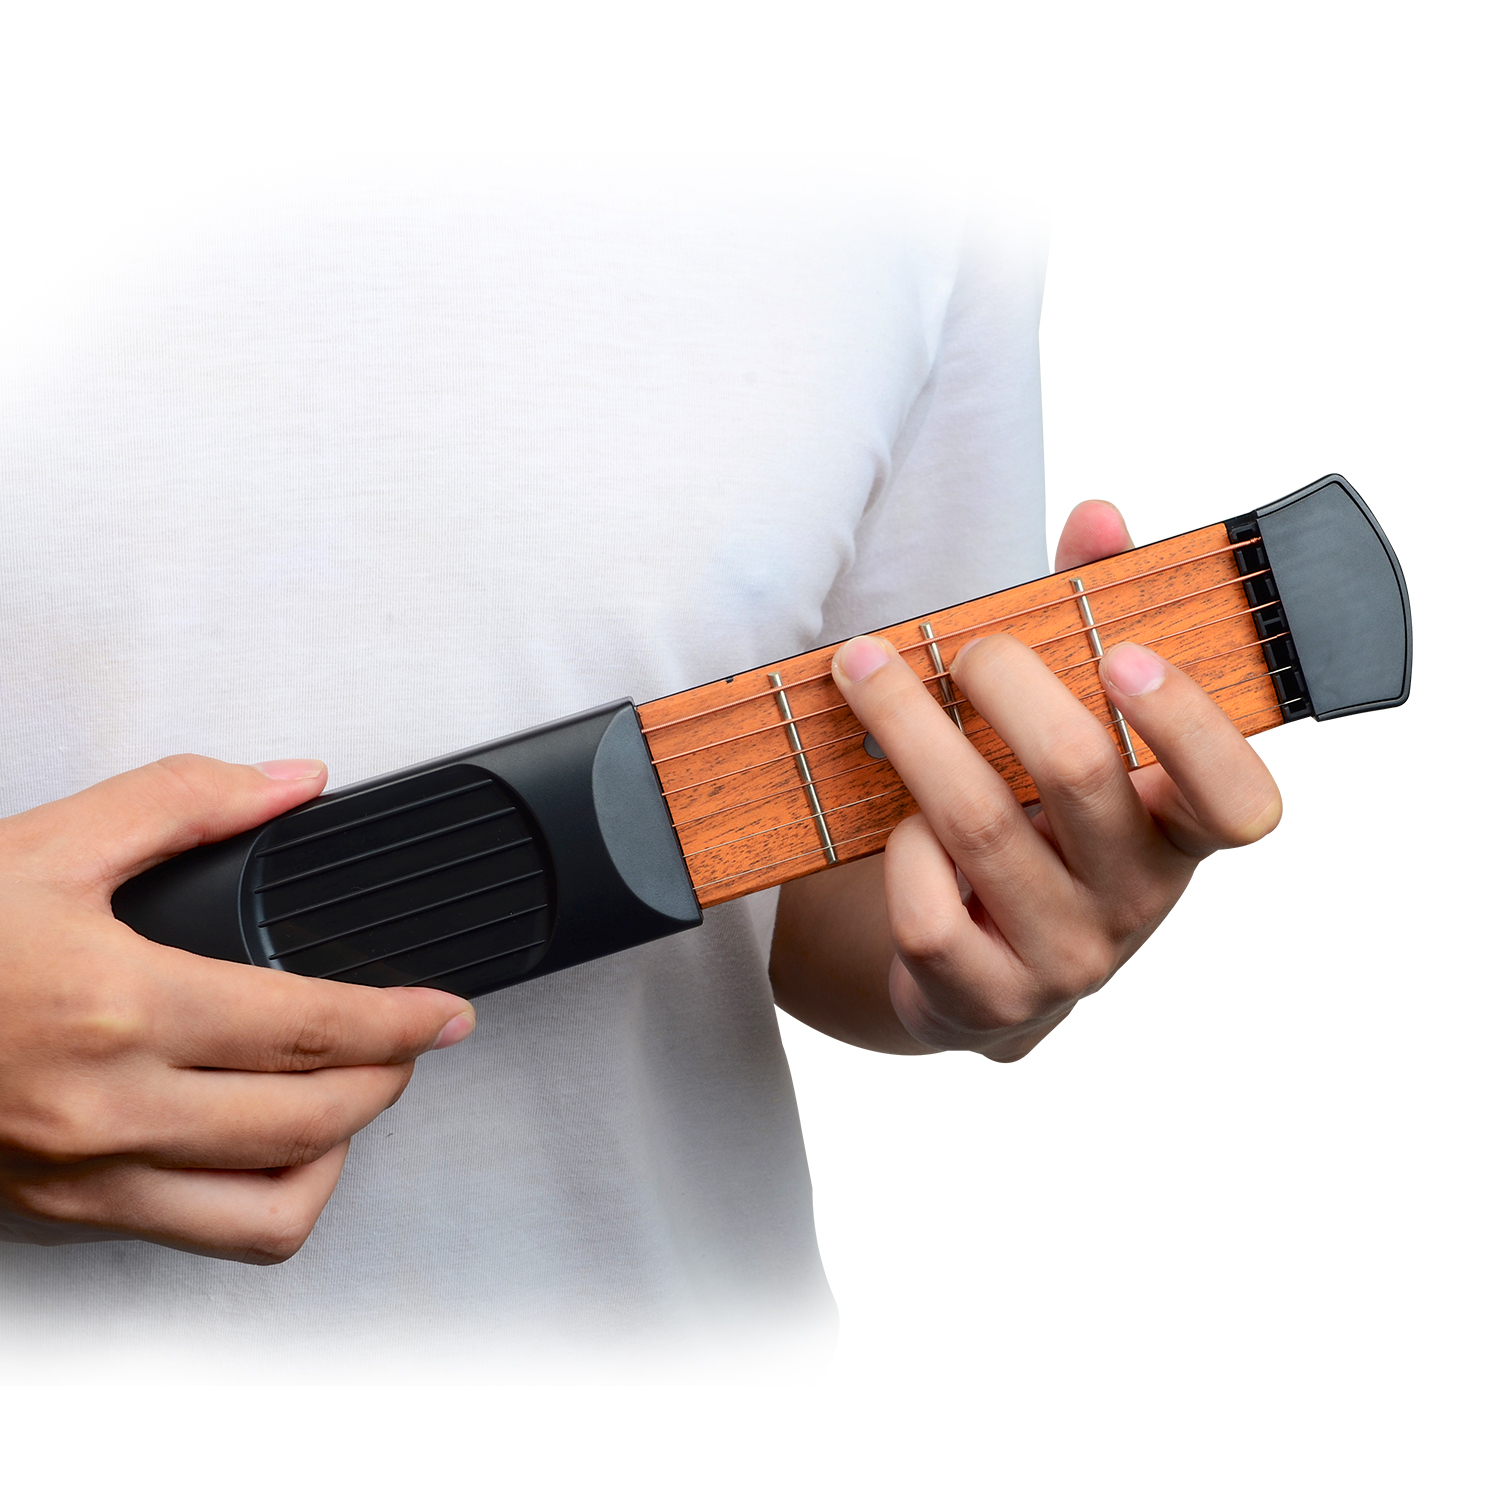 Hot Sale Pocket Acoustic Guitar Practice Tool 6 String Fingerboard 6 Fret Chord Trainer Portable Gadget Musical Instruments Guitar Parts & Accessories